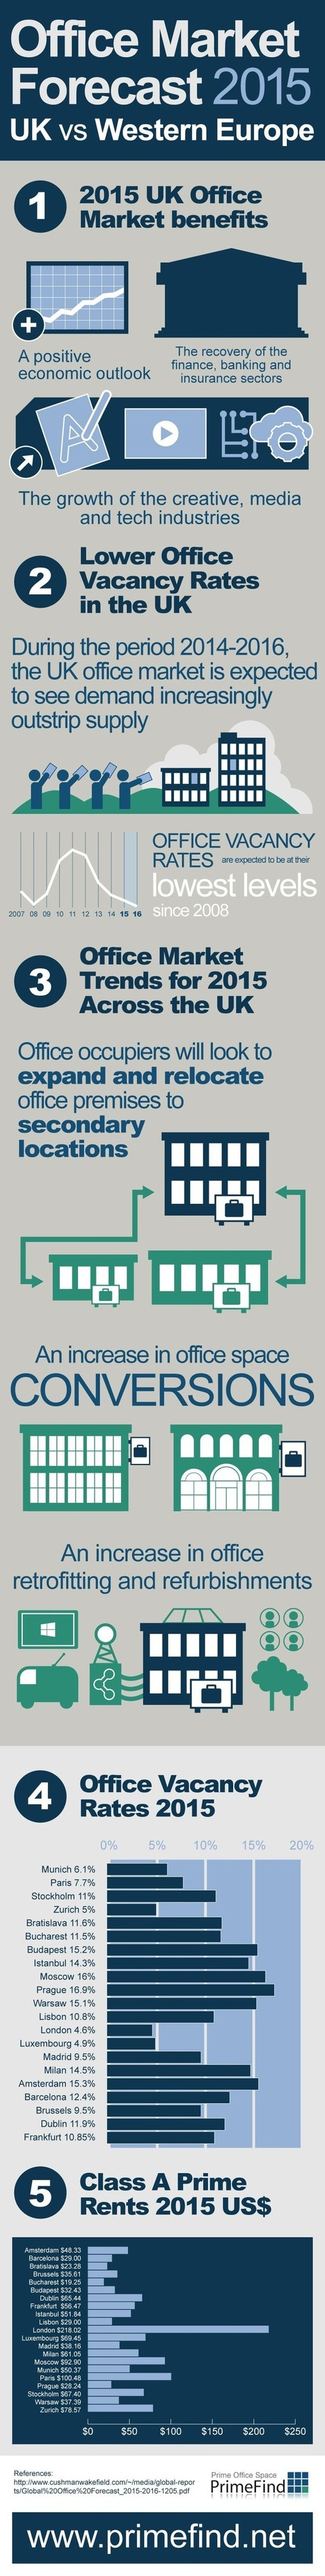 Increasing rate of Office Market trends in Uk vs Western Europe | All Infographics | Scoop.it